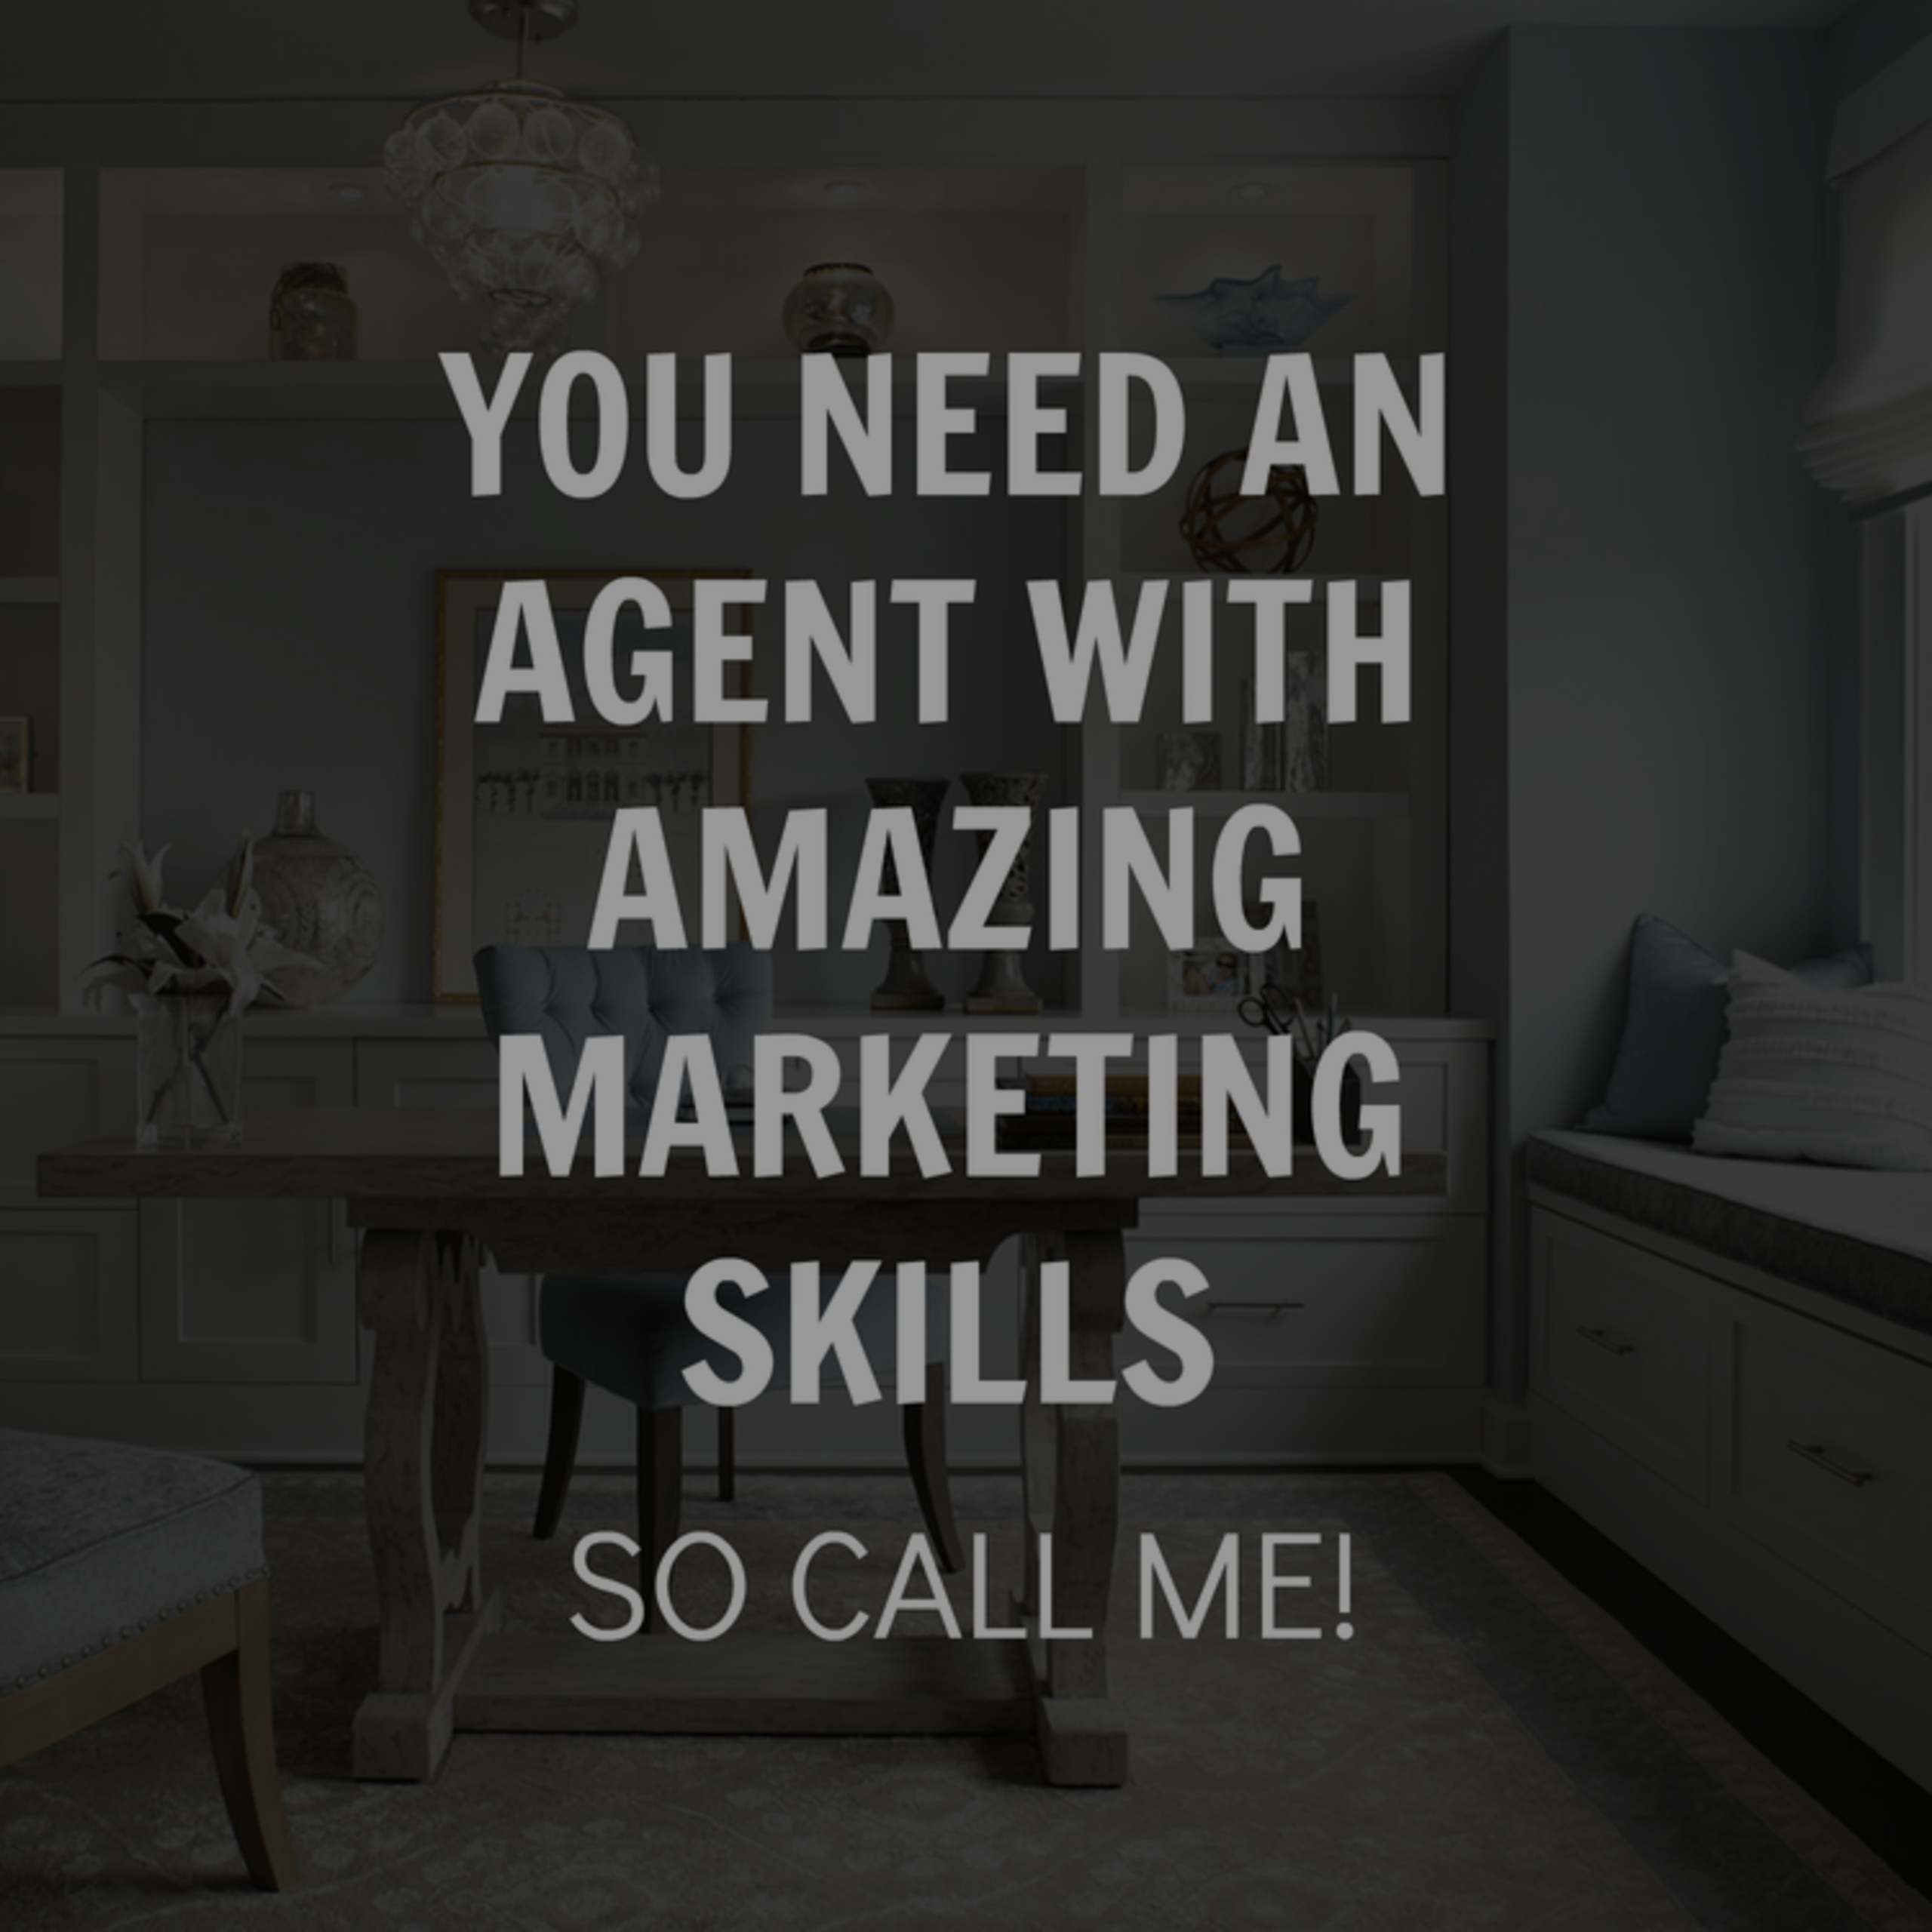 Selling your home or land? Looking for an agent?